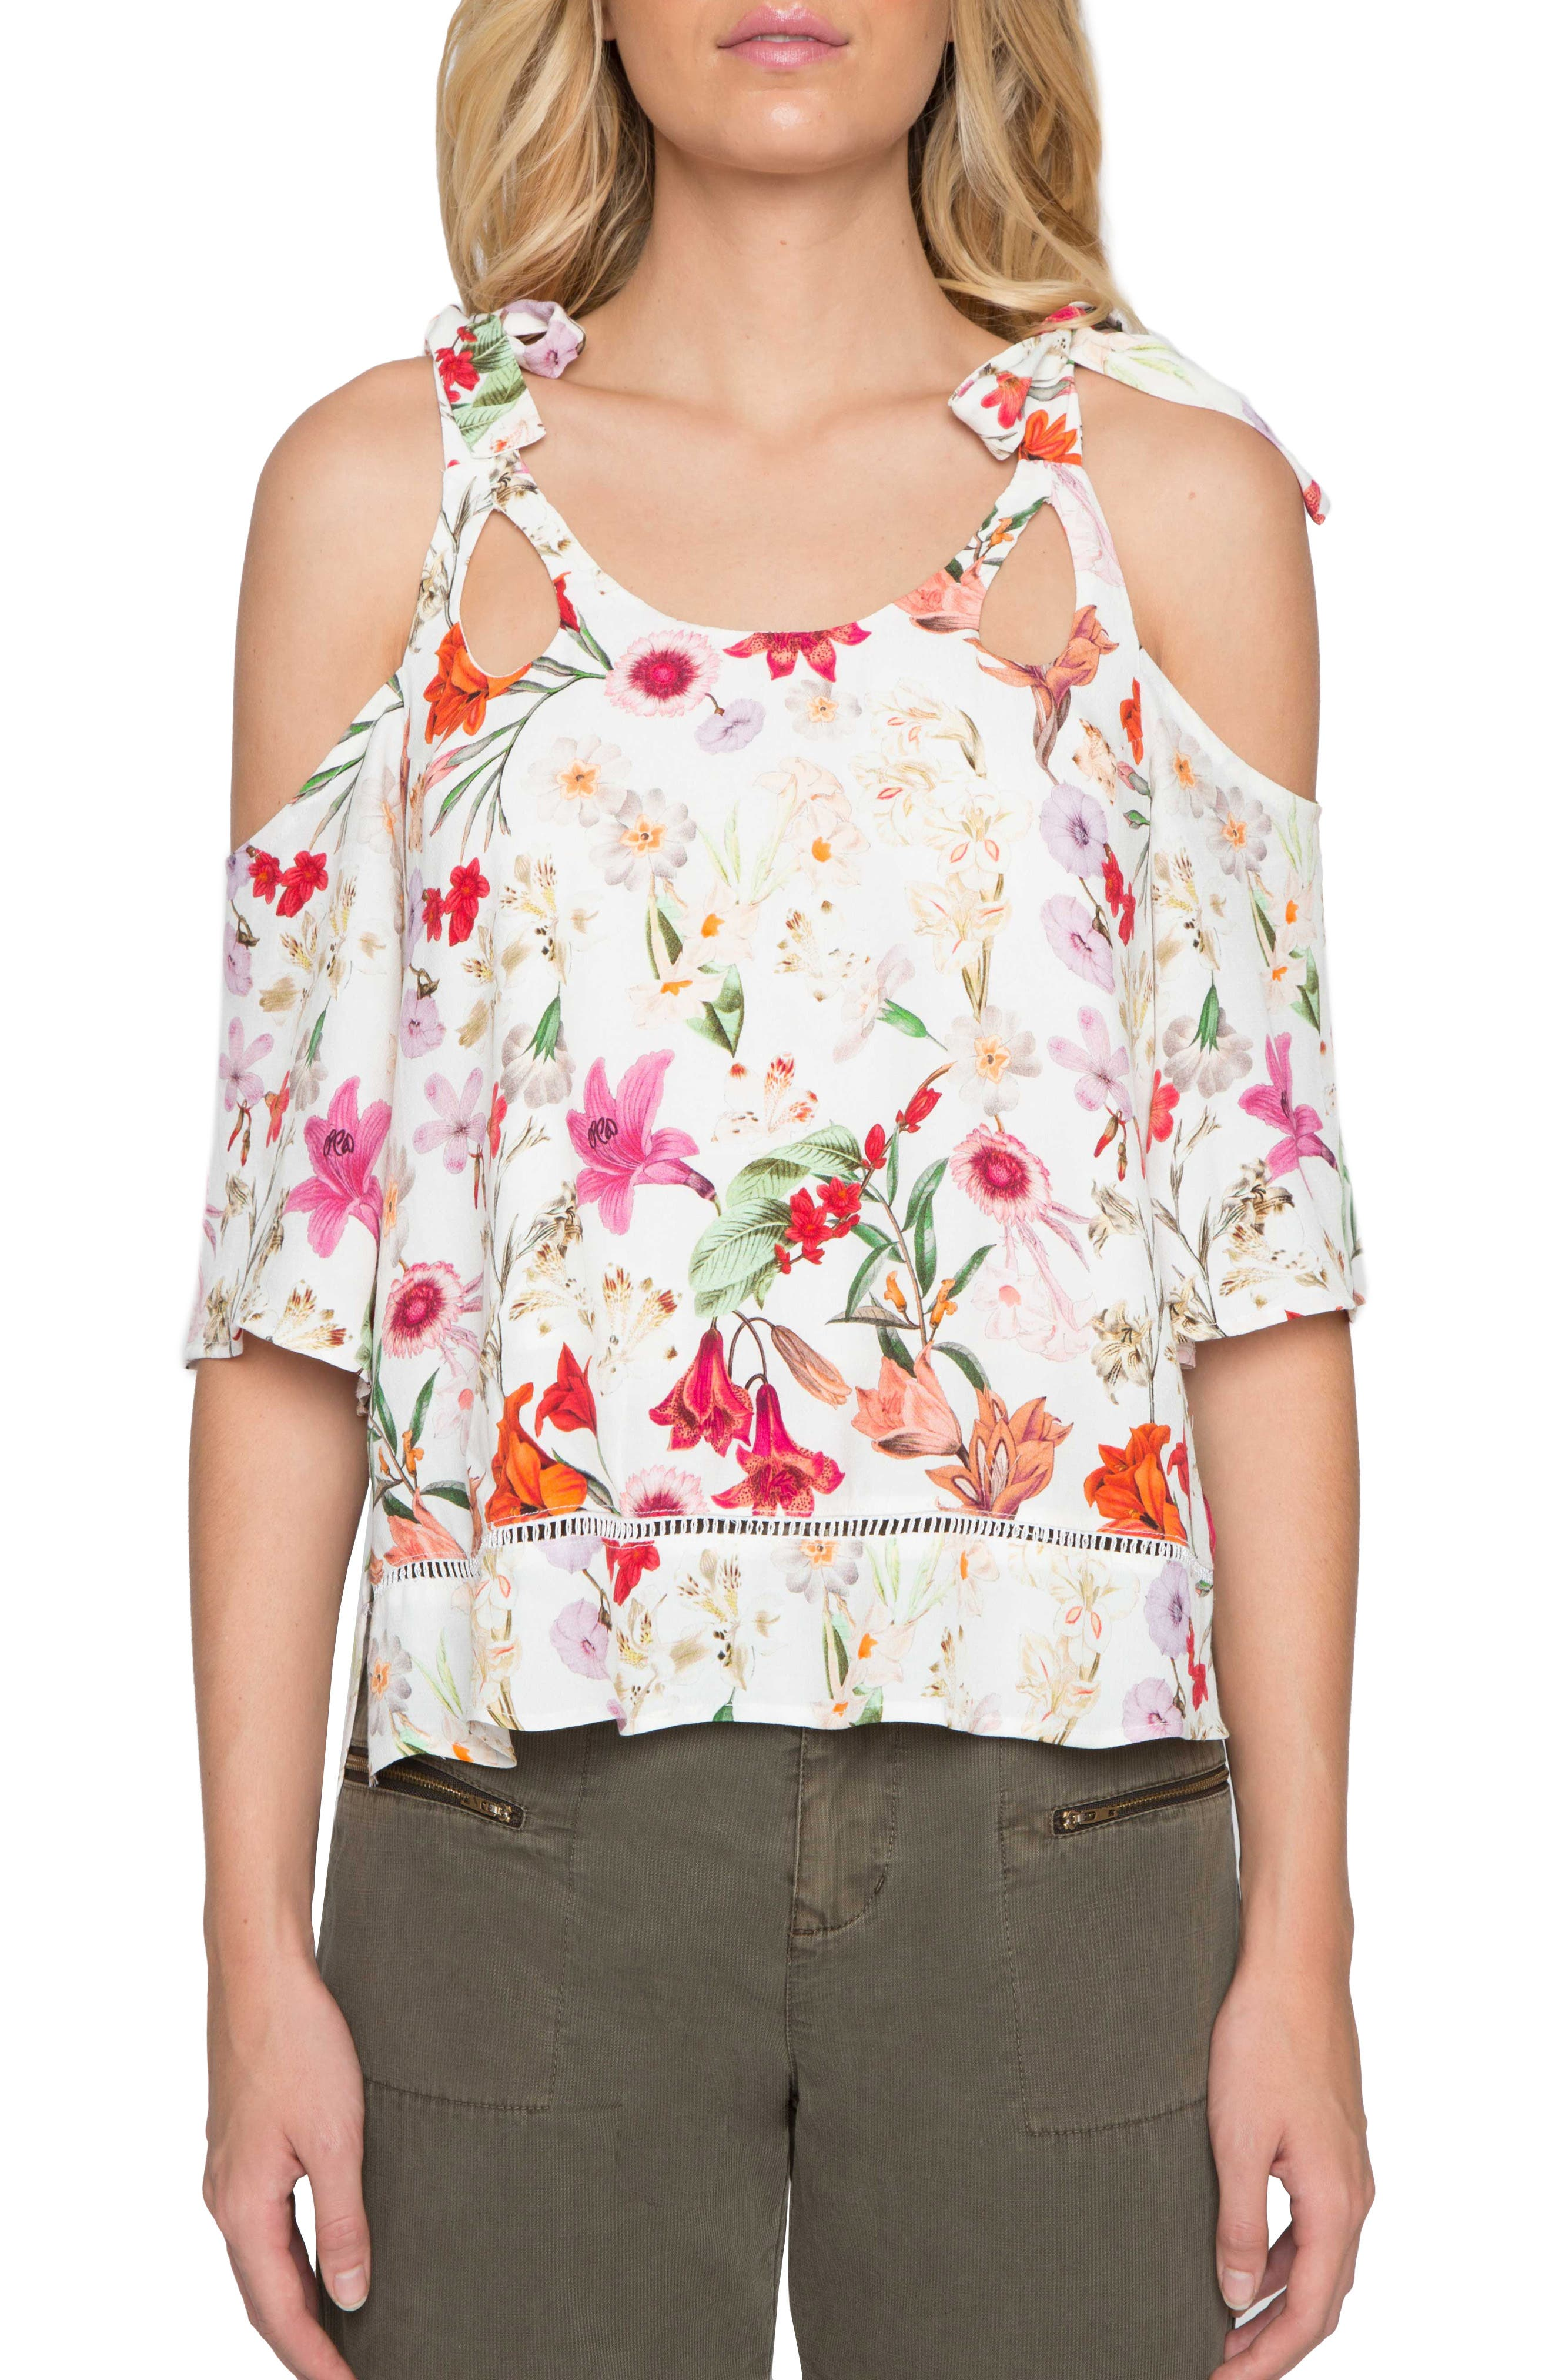 Alternate Image 1 Selected - Willow & Clay Cold Shoulder Floral Print Top